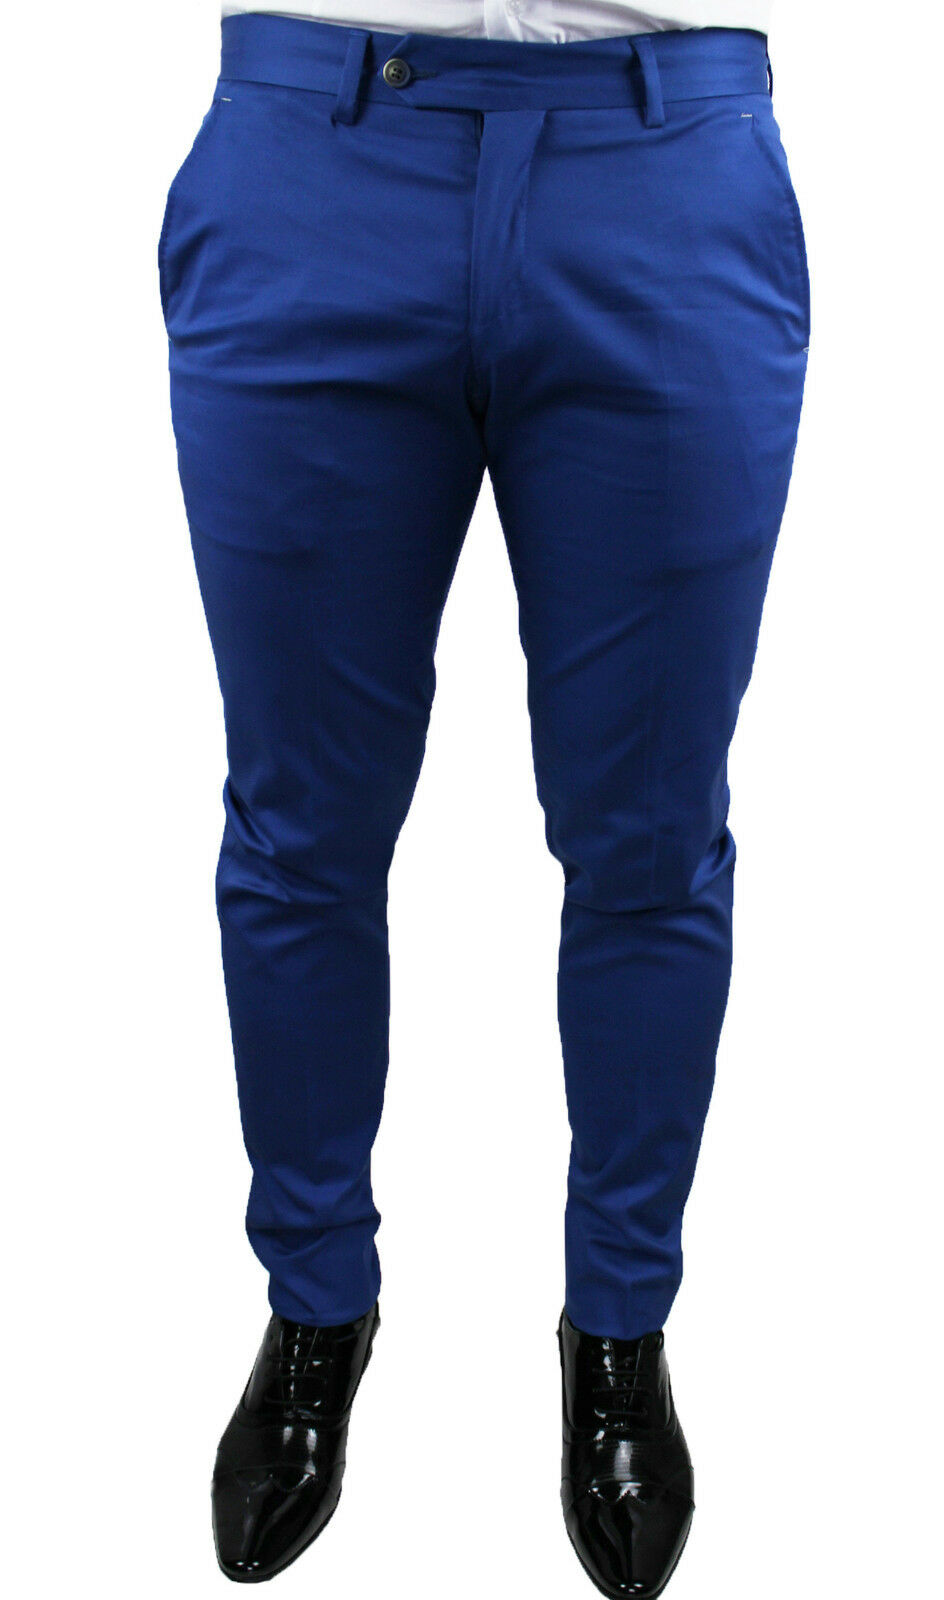 MEN'S TROUSERS DIAMOND ÉLÉGANT CASUAL blueE LIGHT SLIM FIT NEW MADE IN ITALY